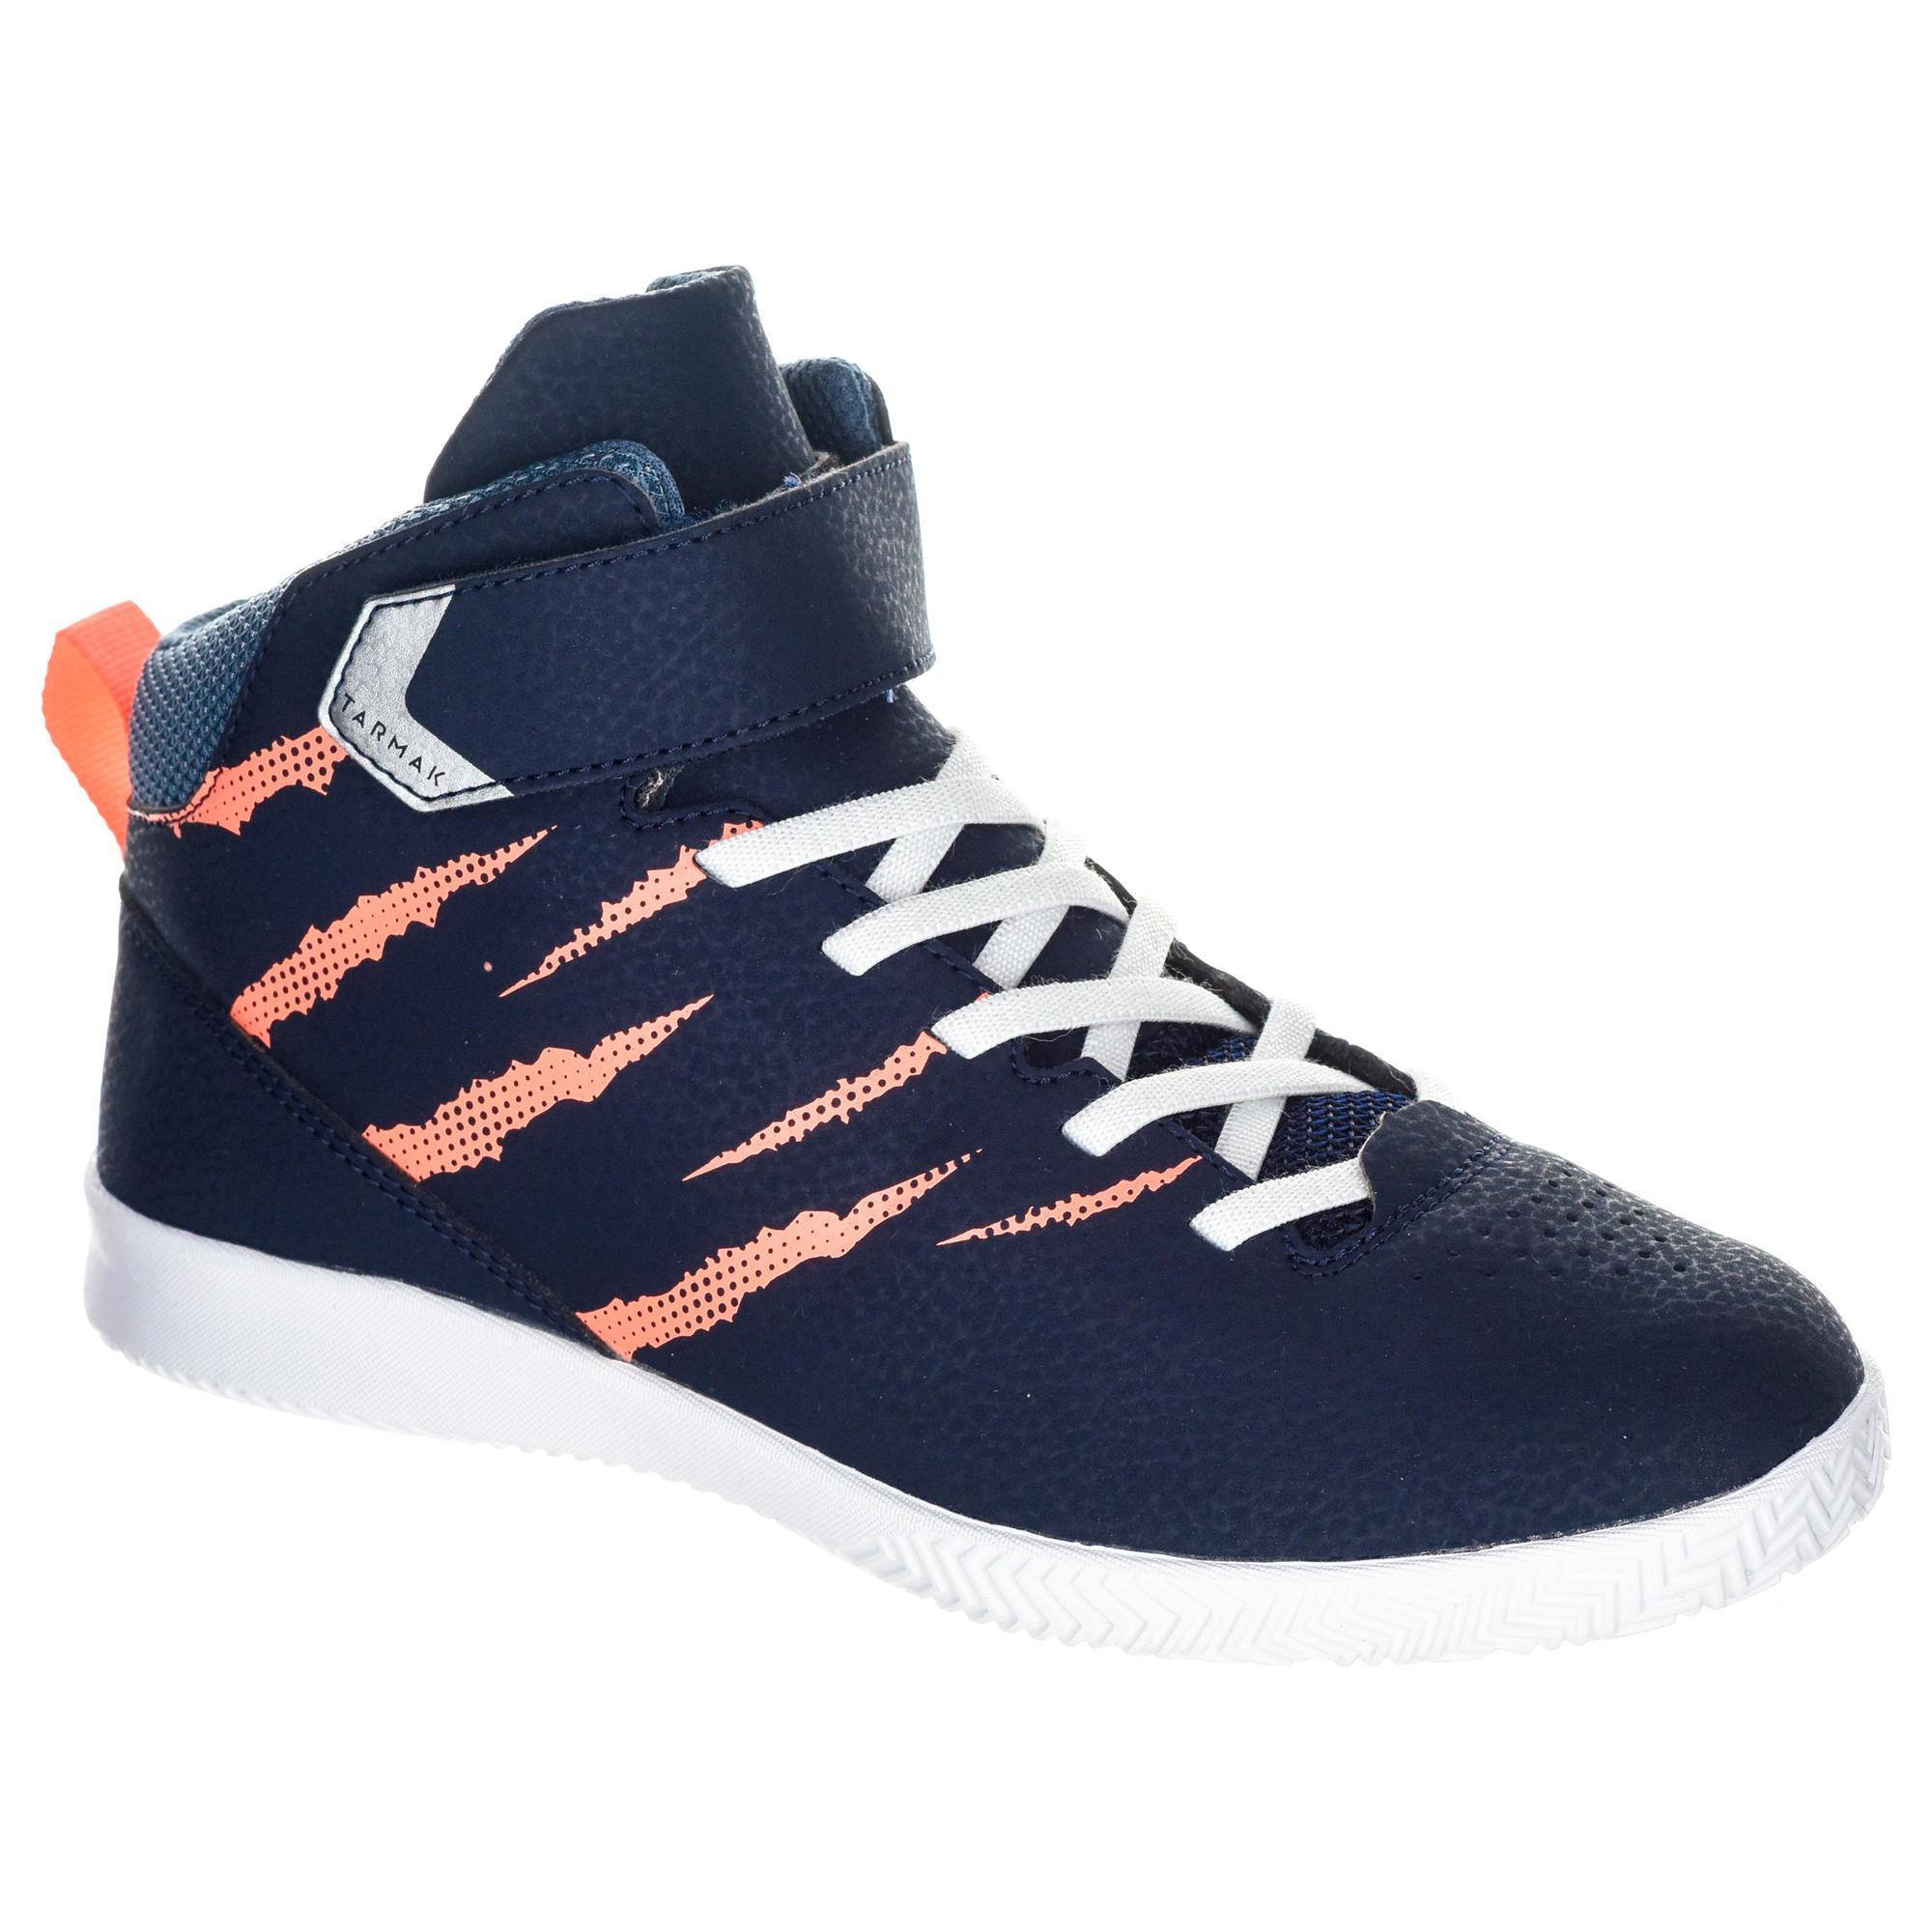 2612060 Tarmak Basketbalschoenen Tarmak Strong 100